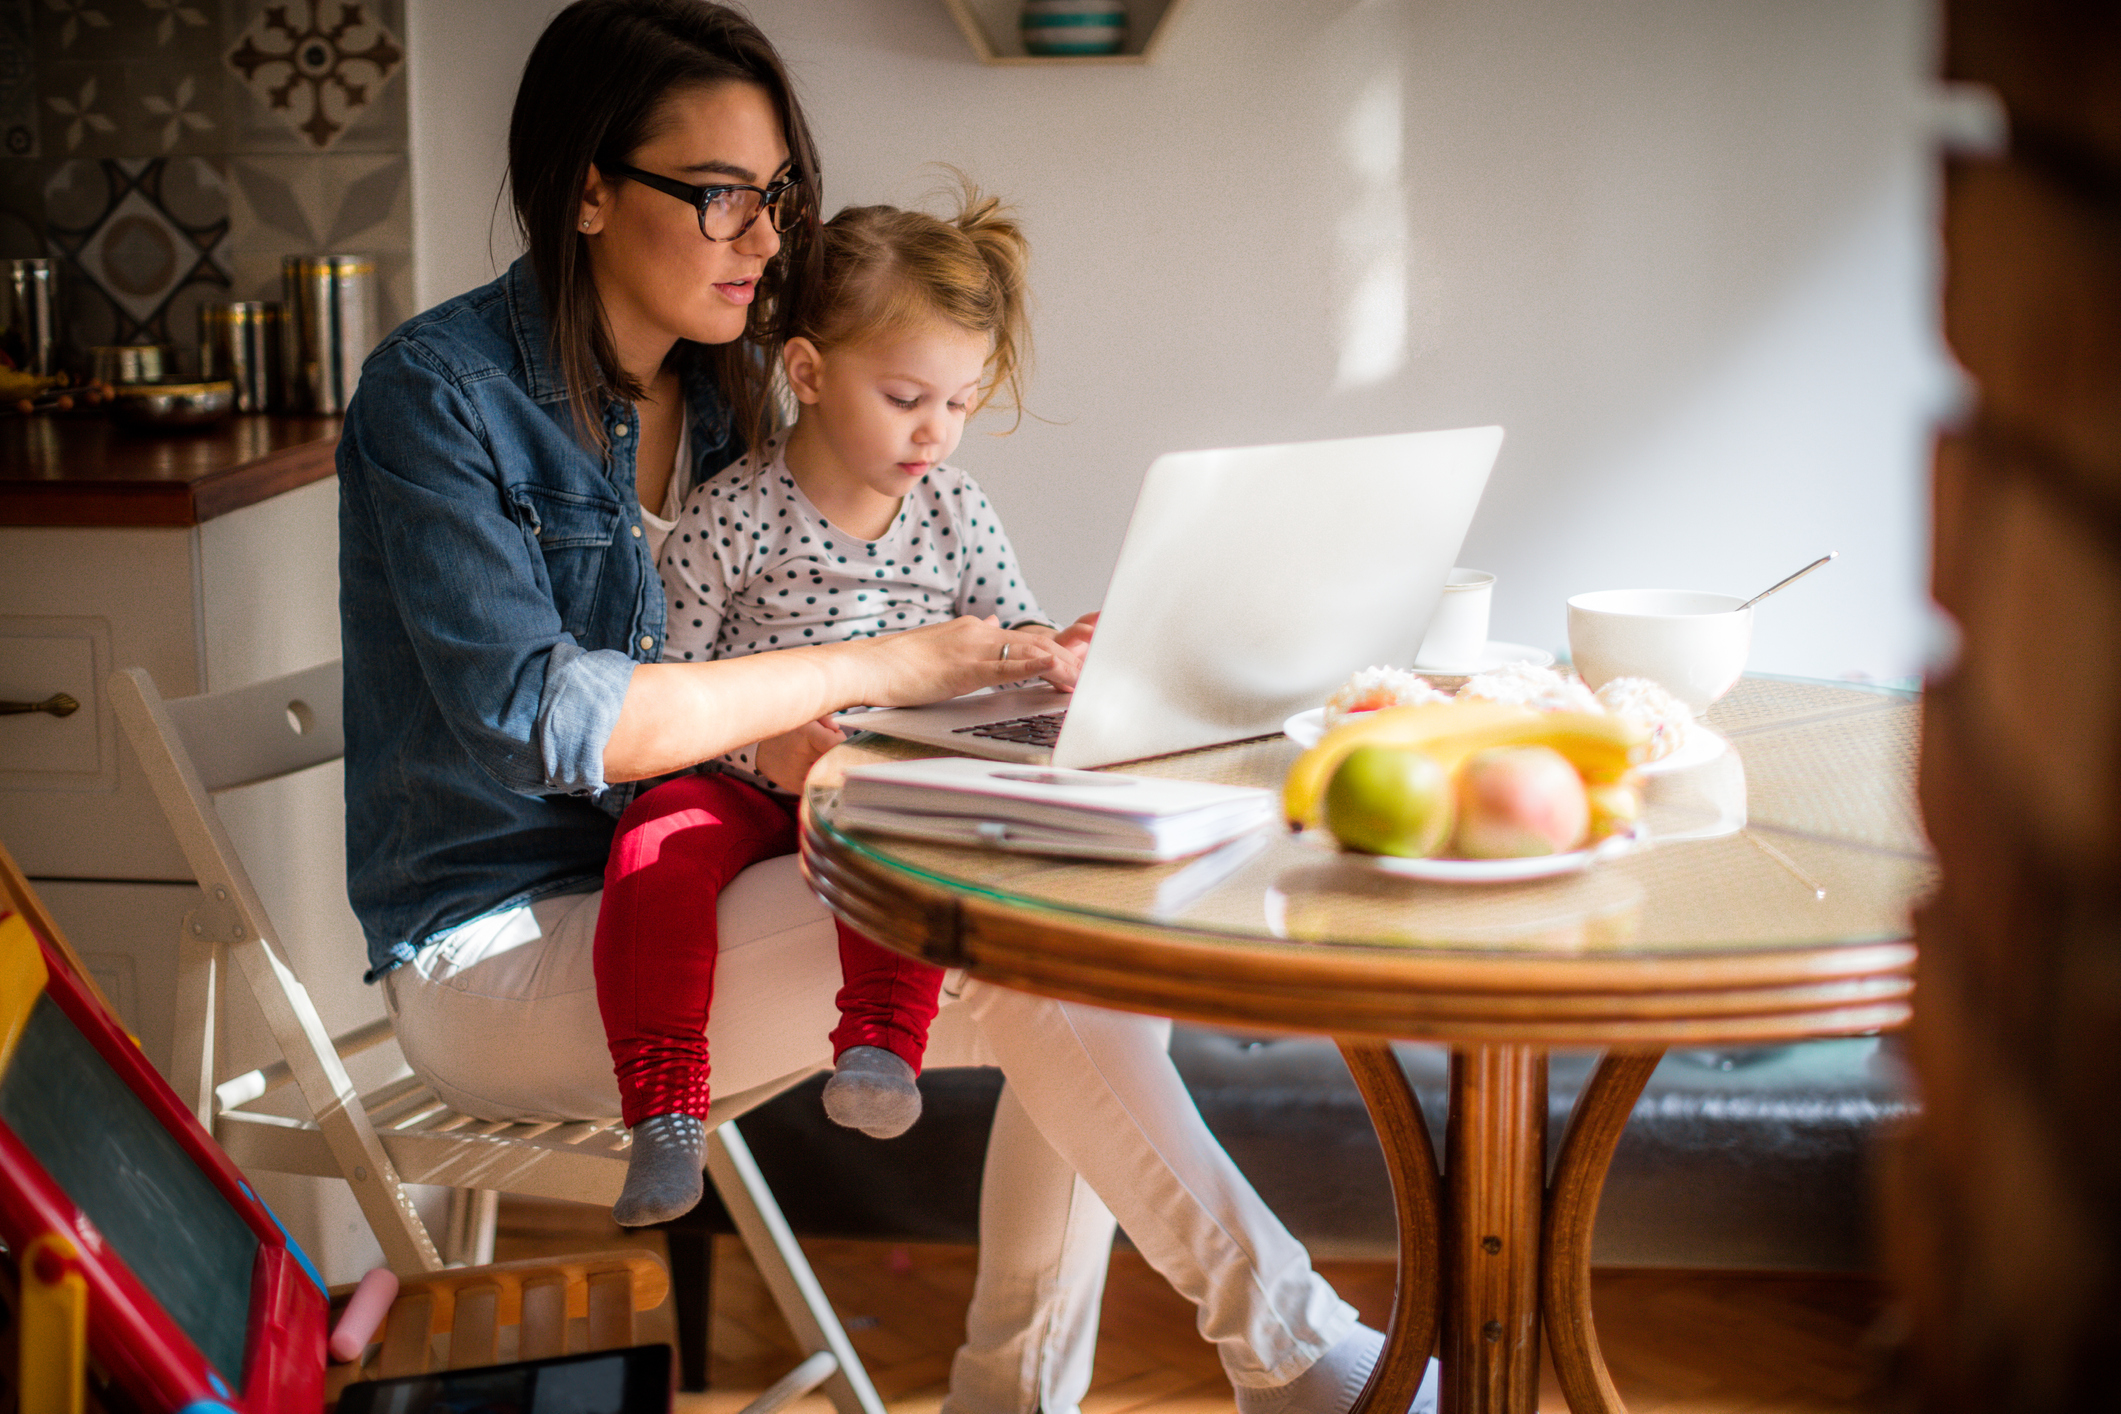 work from home mom - Owl Labs - Work from Home Week Report Overview - Virtual Vocations telecommute and remote jobs